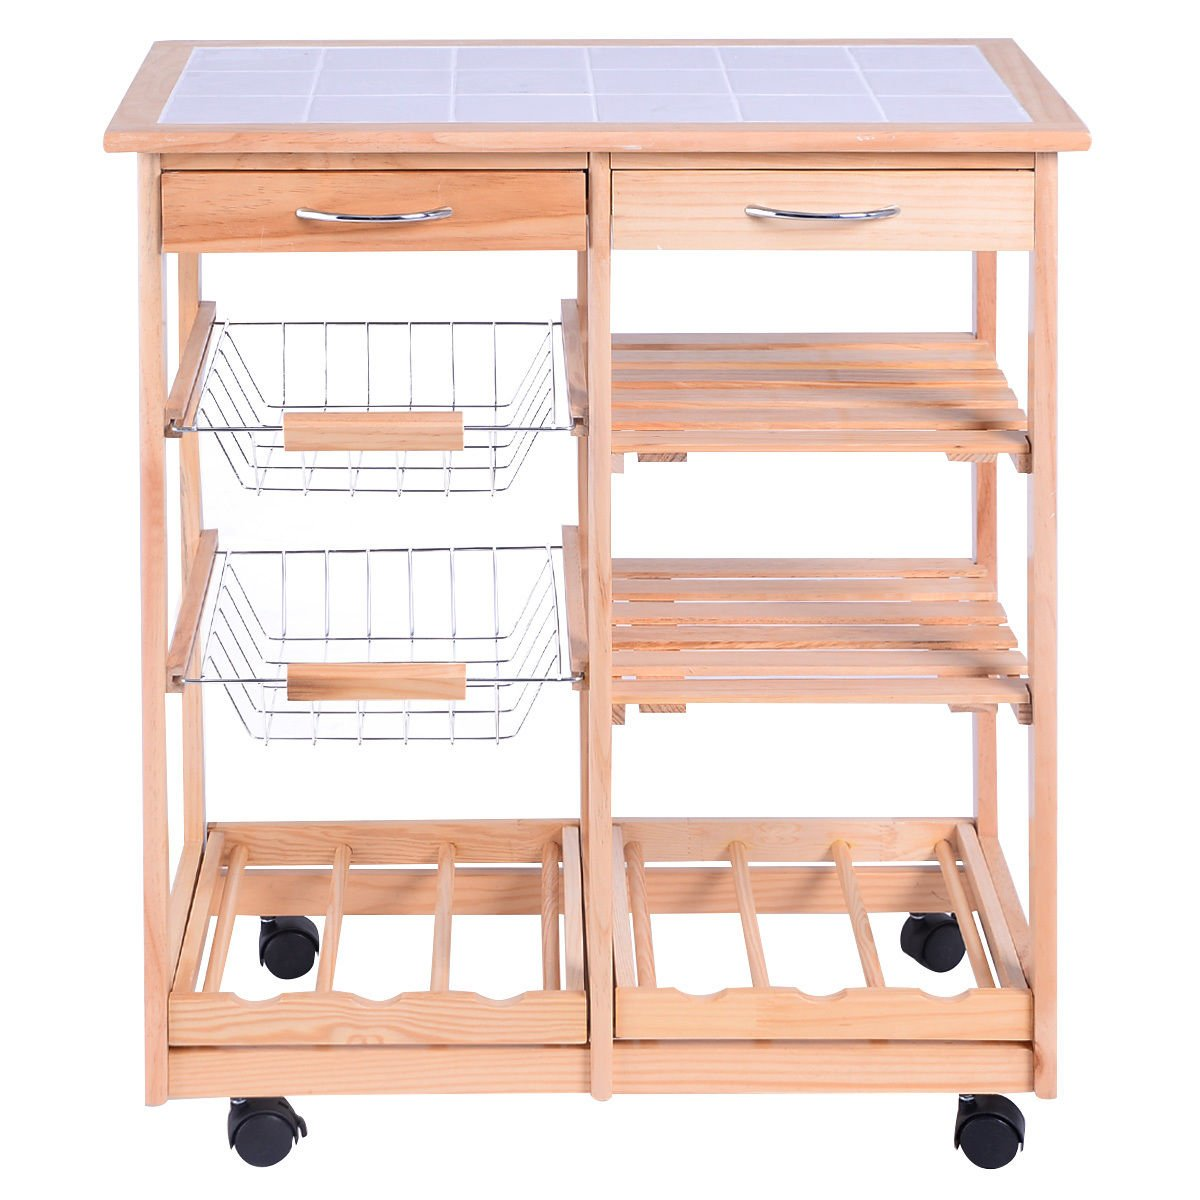 White Bear & Brown Rabbit Rolling Wood Kitchen Trolley Cart Dining Storage Drawers Stand Durable